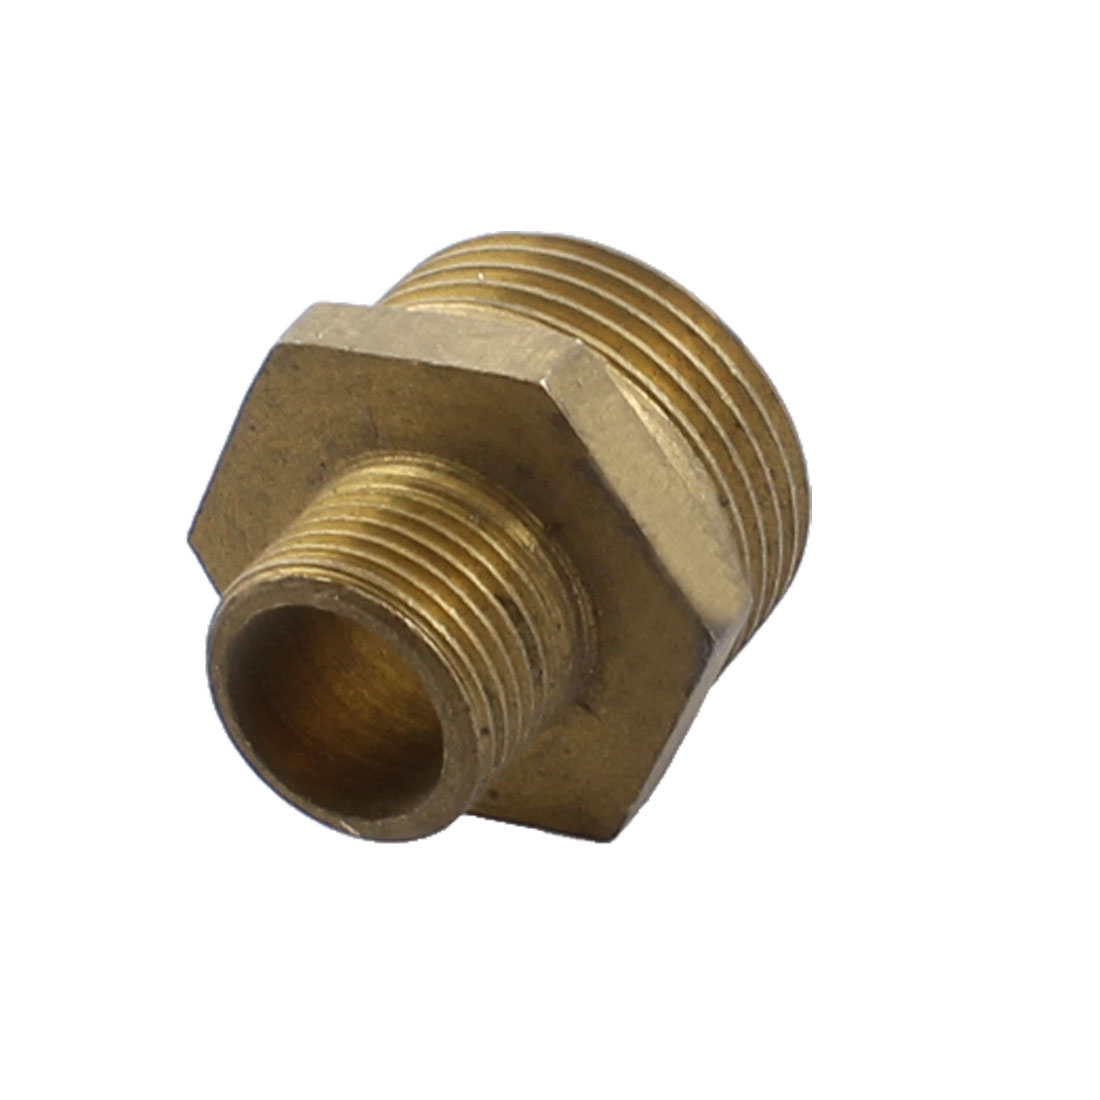 3/4PT x 3/8PT Male to Male Threaded Straight Pipe Hex Nipple Coupler Connector for Water Heating Fitting